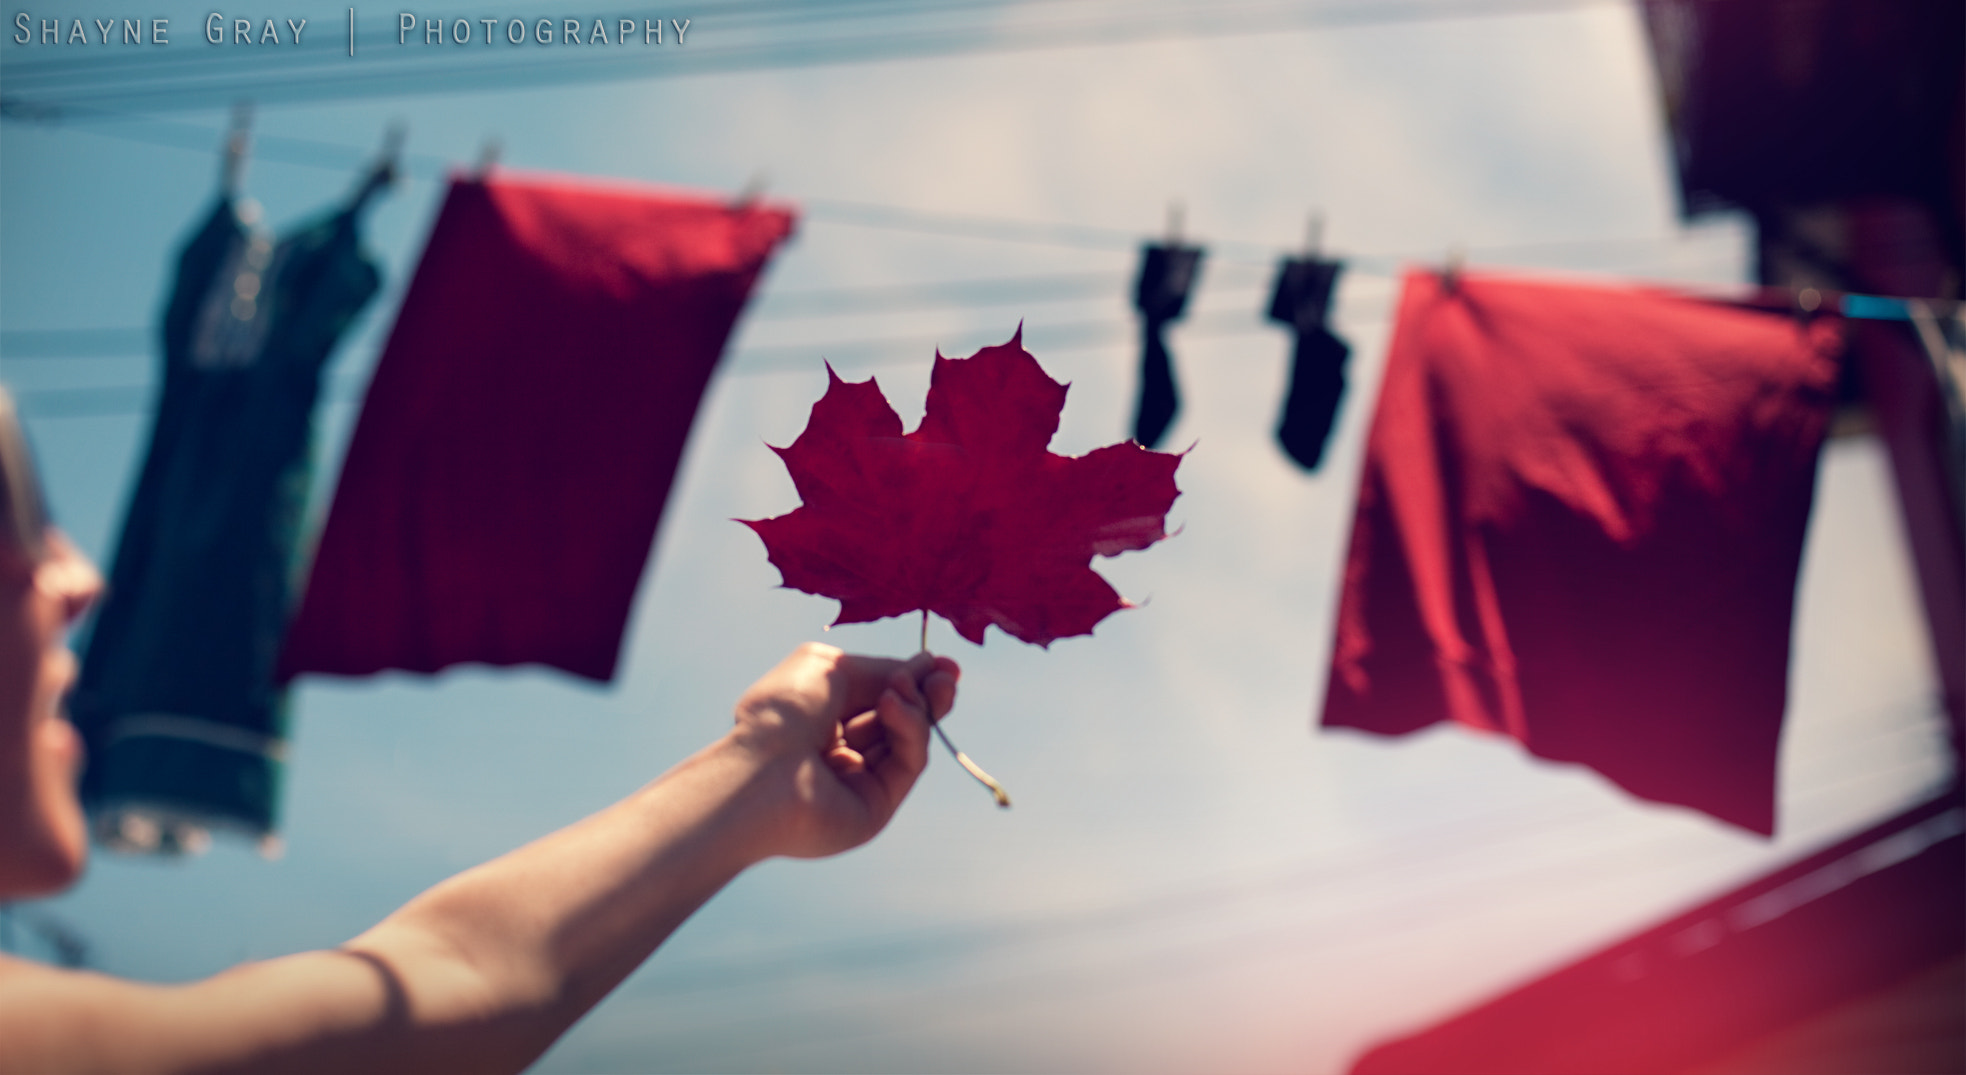 Photograph Happy Canada Day! by shayne gray on 500px